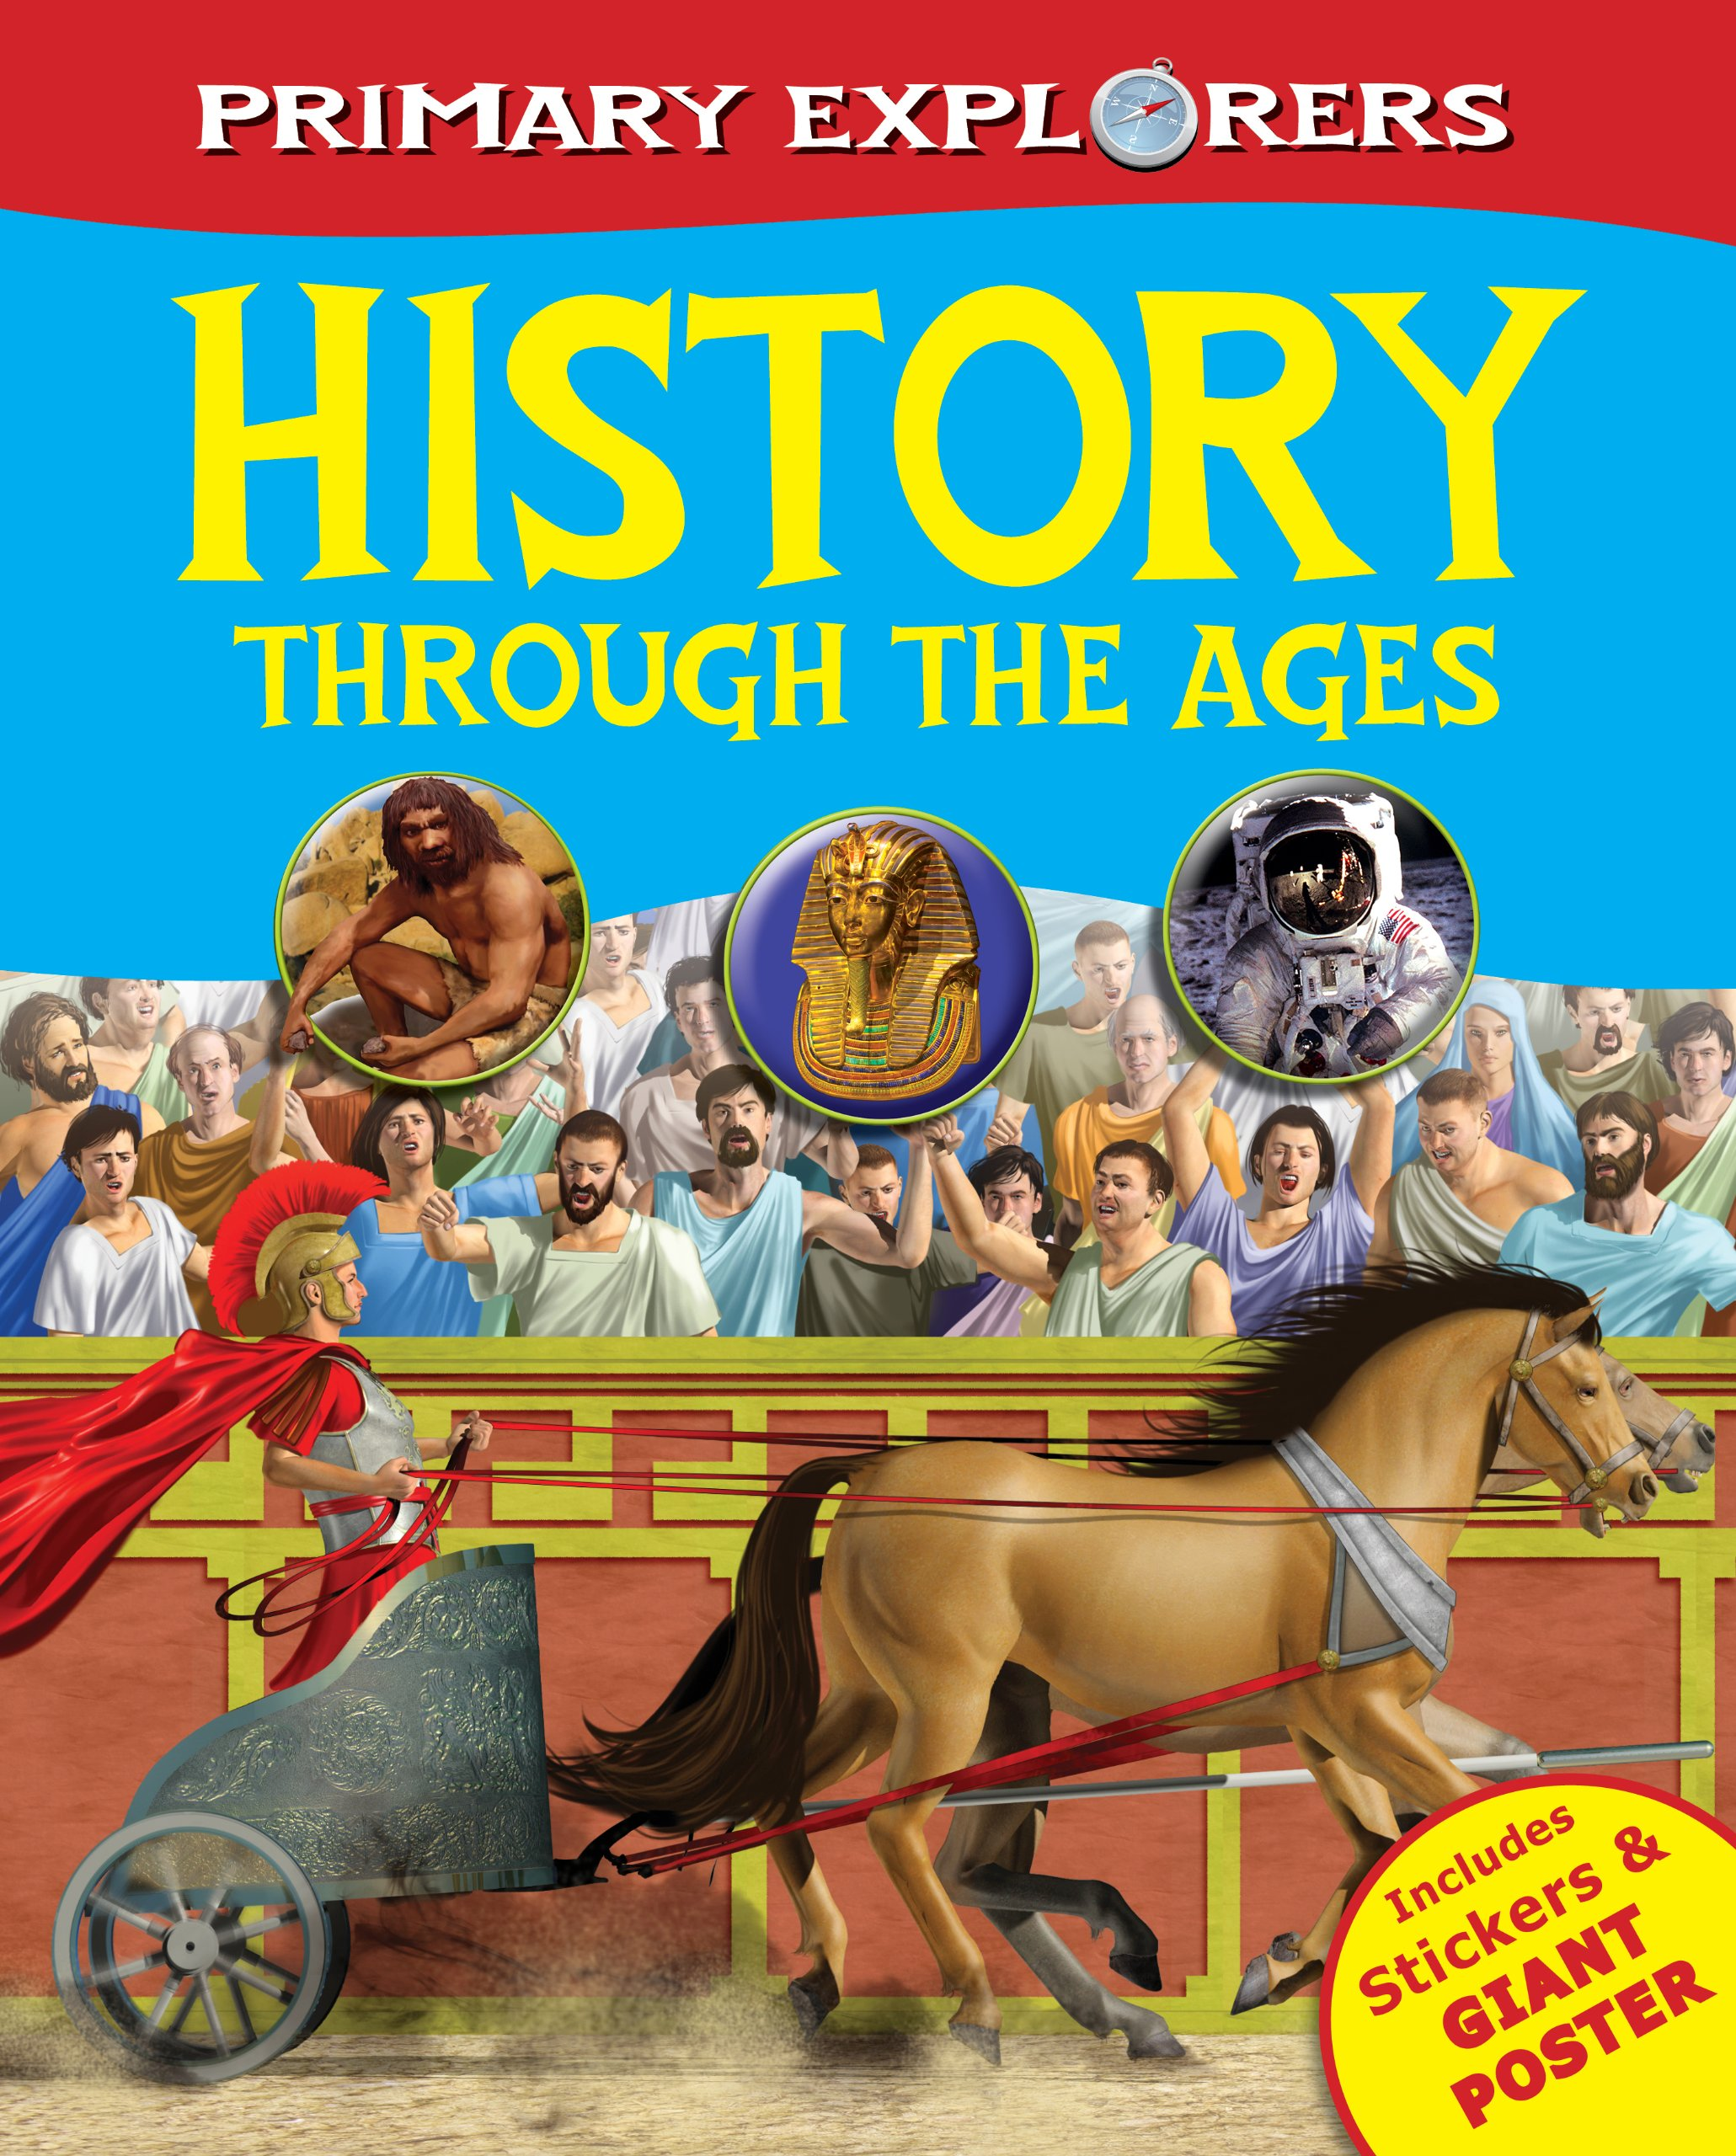 History Through the Ages (Primary Explorers), Igloo Books Ltd, New